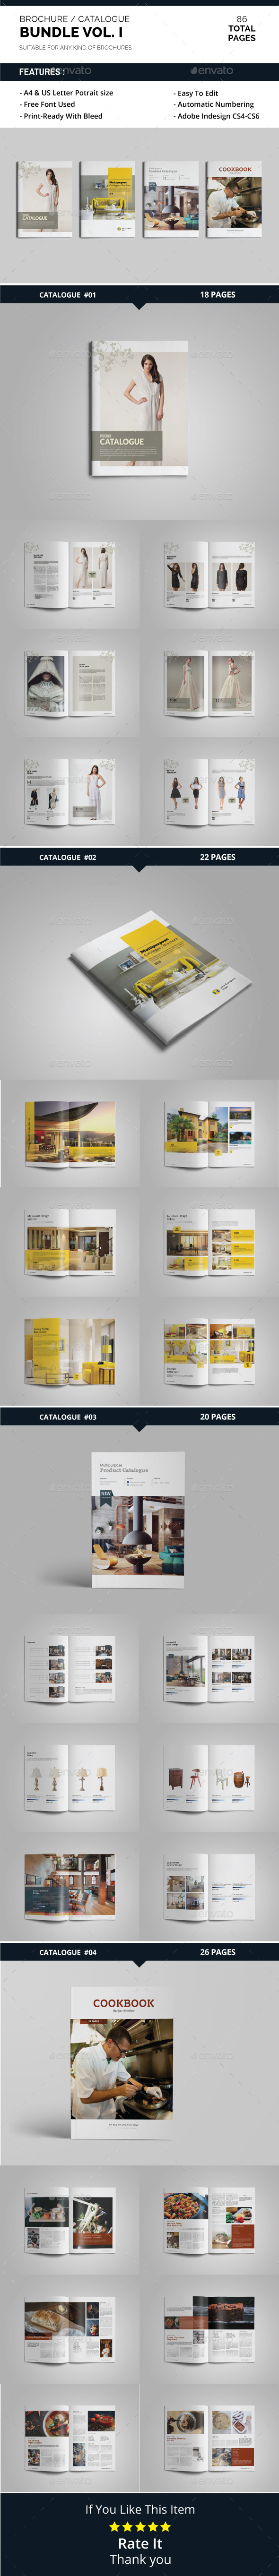 Brochure / Catalogue Bundle Vol. 1 - Catalogs Brochures